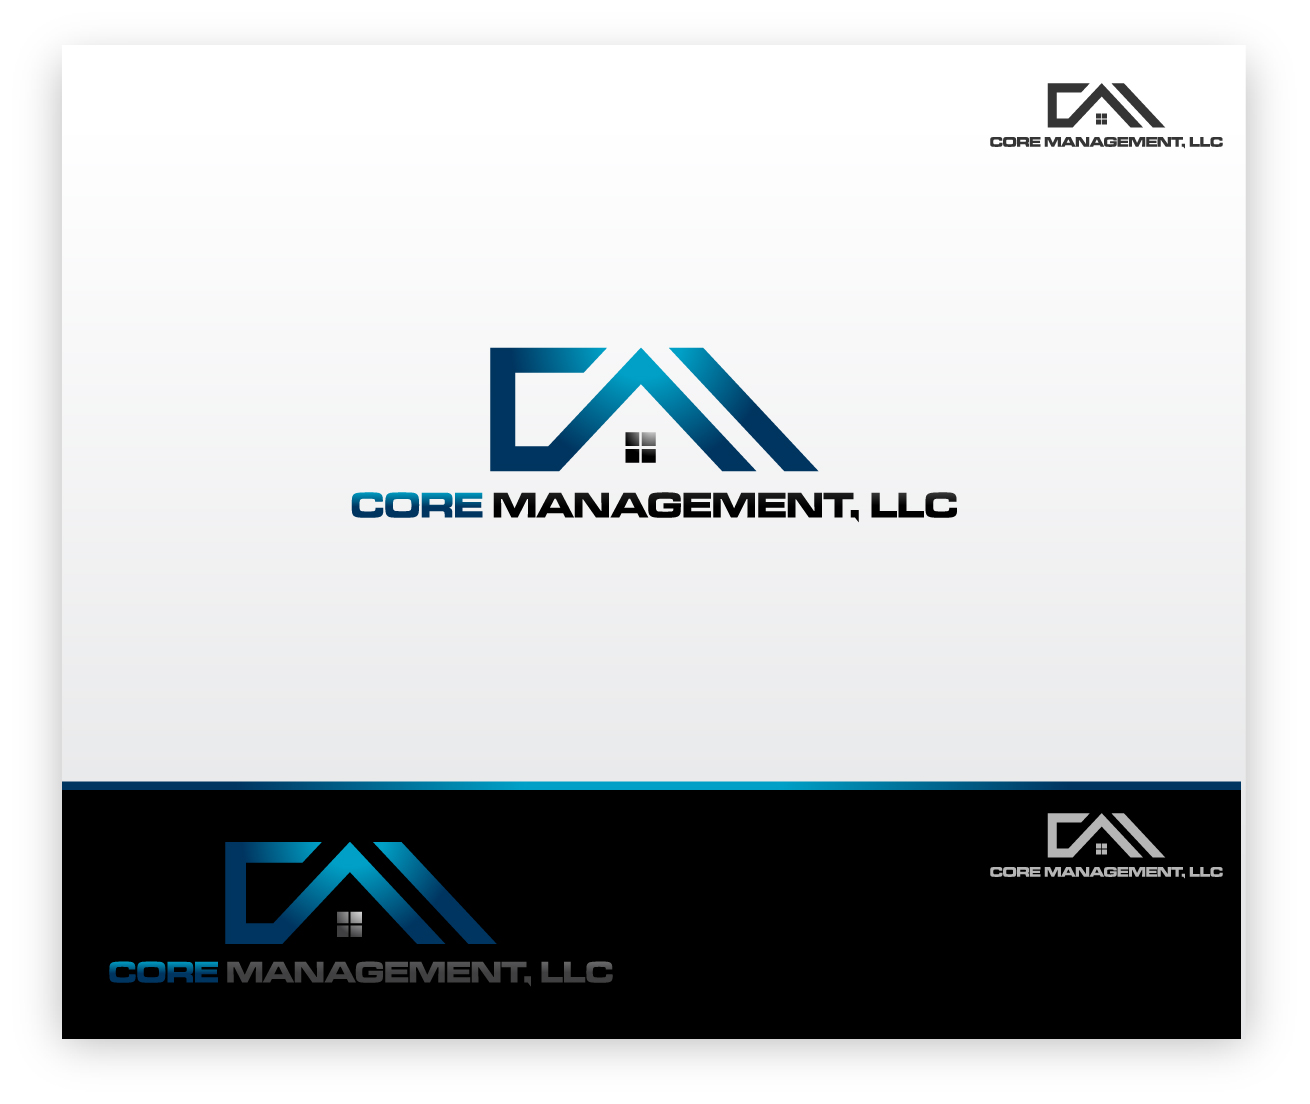 Logo Design by zoiDesign - Entry No. 28 in the Logo Design Contest Creative Logo Design for CORE Management, LLC.